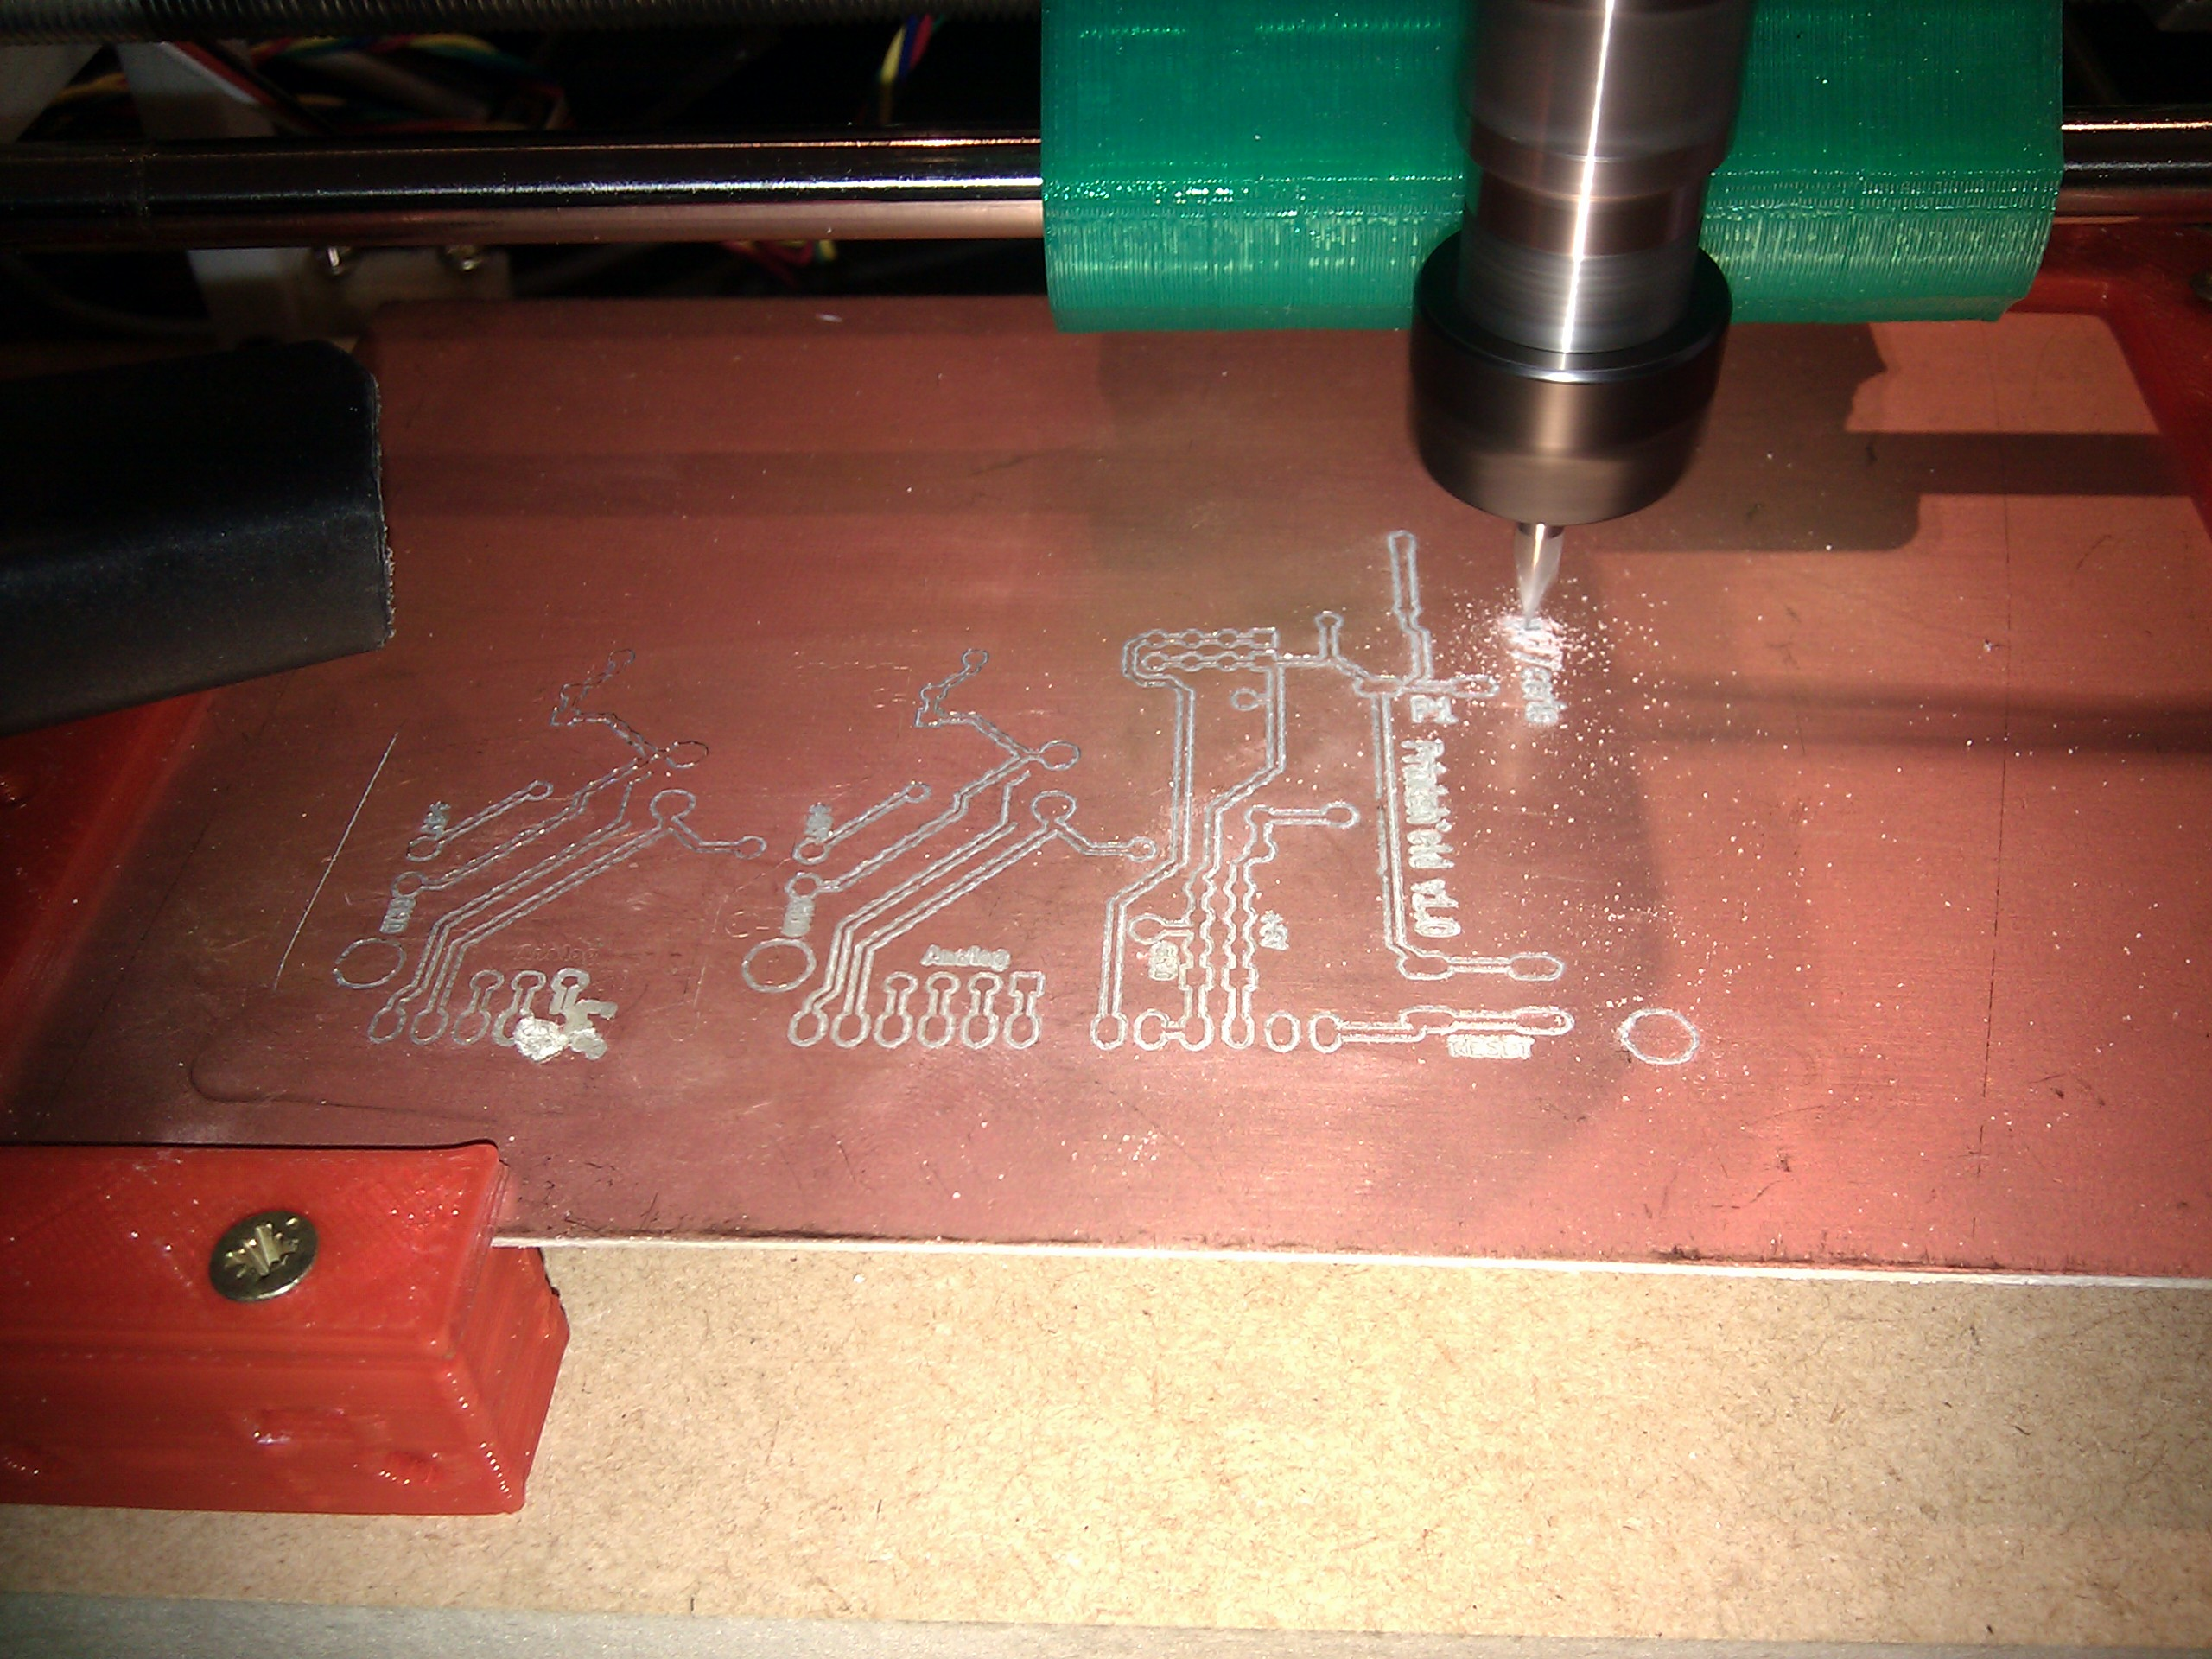 Considerations after first PCB milling tests · Issue #4